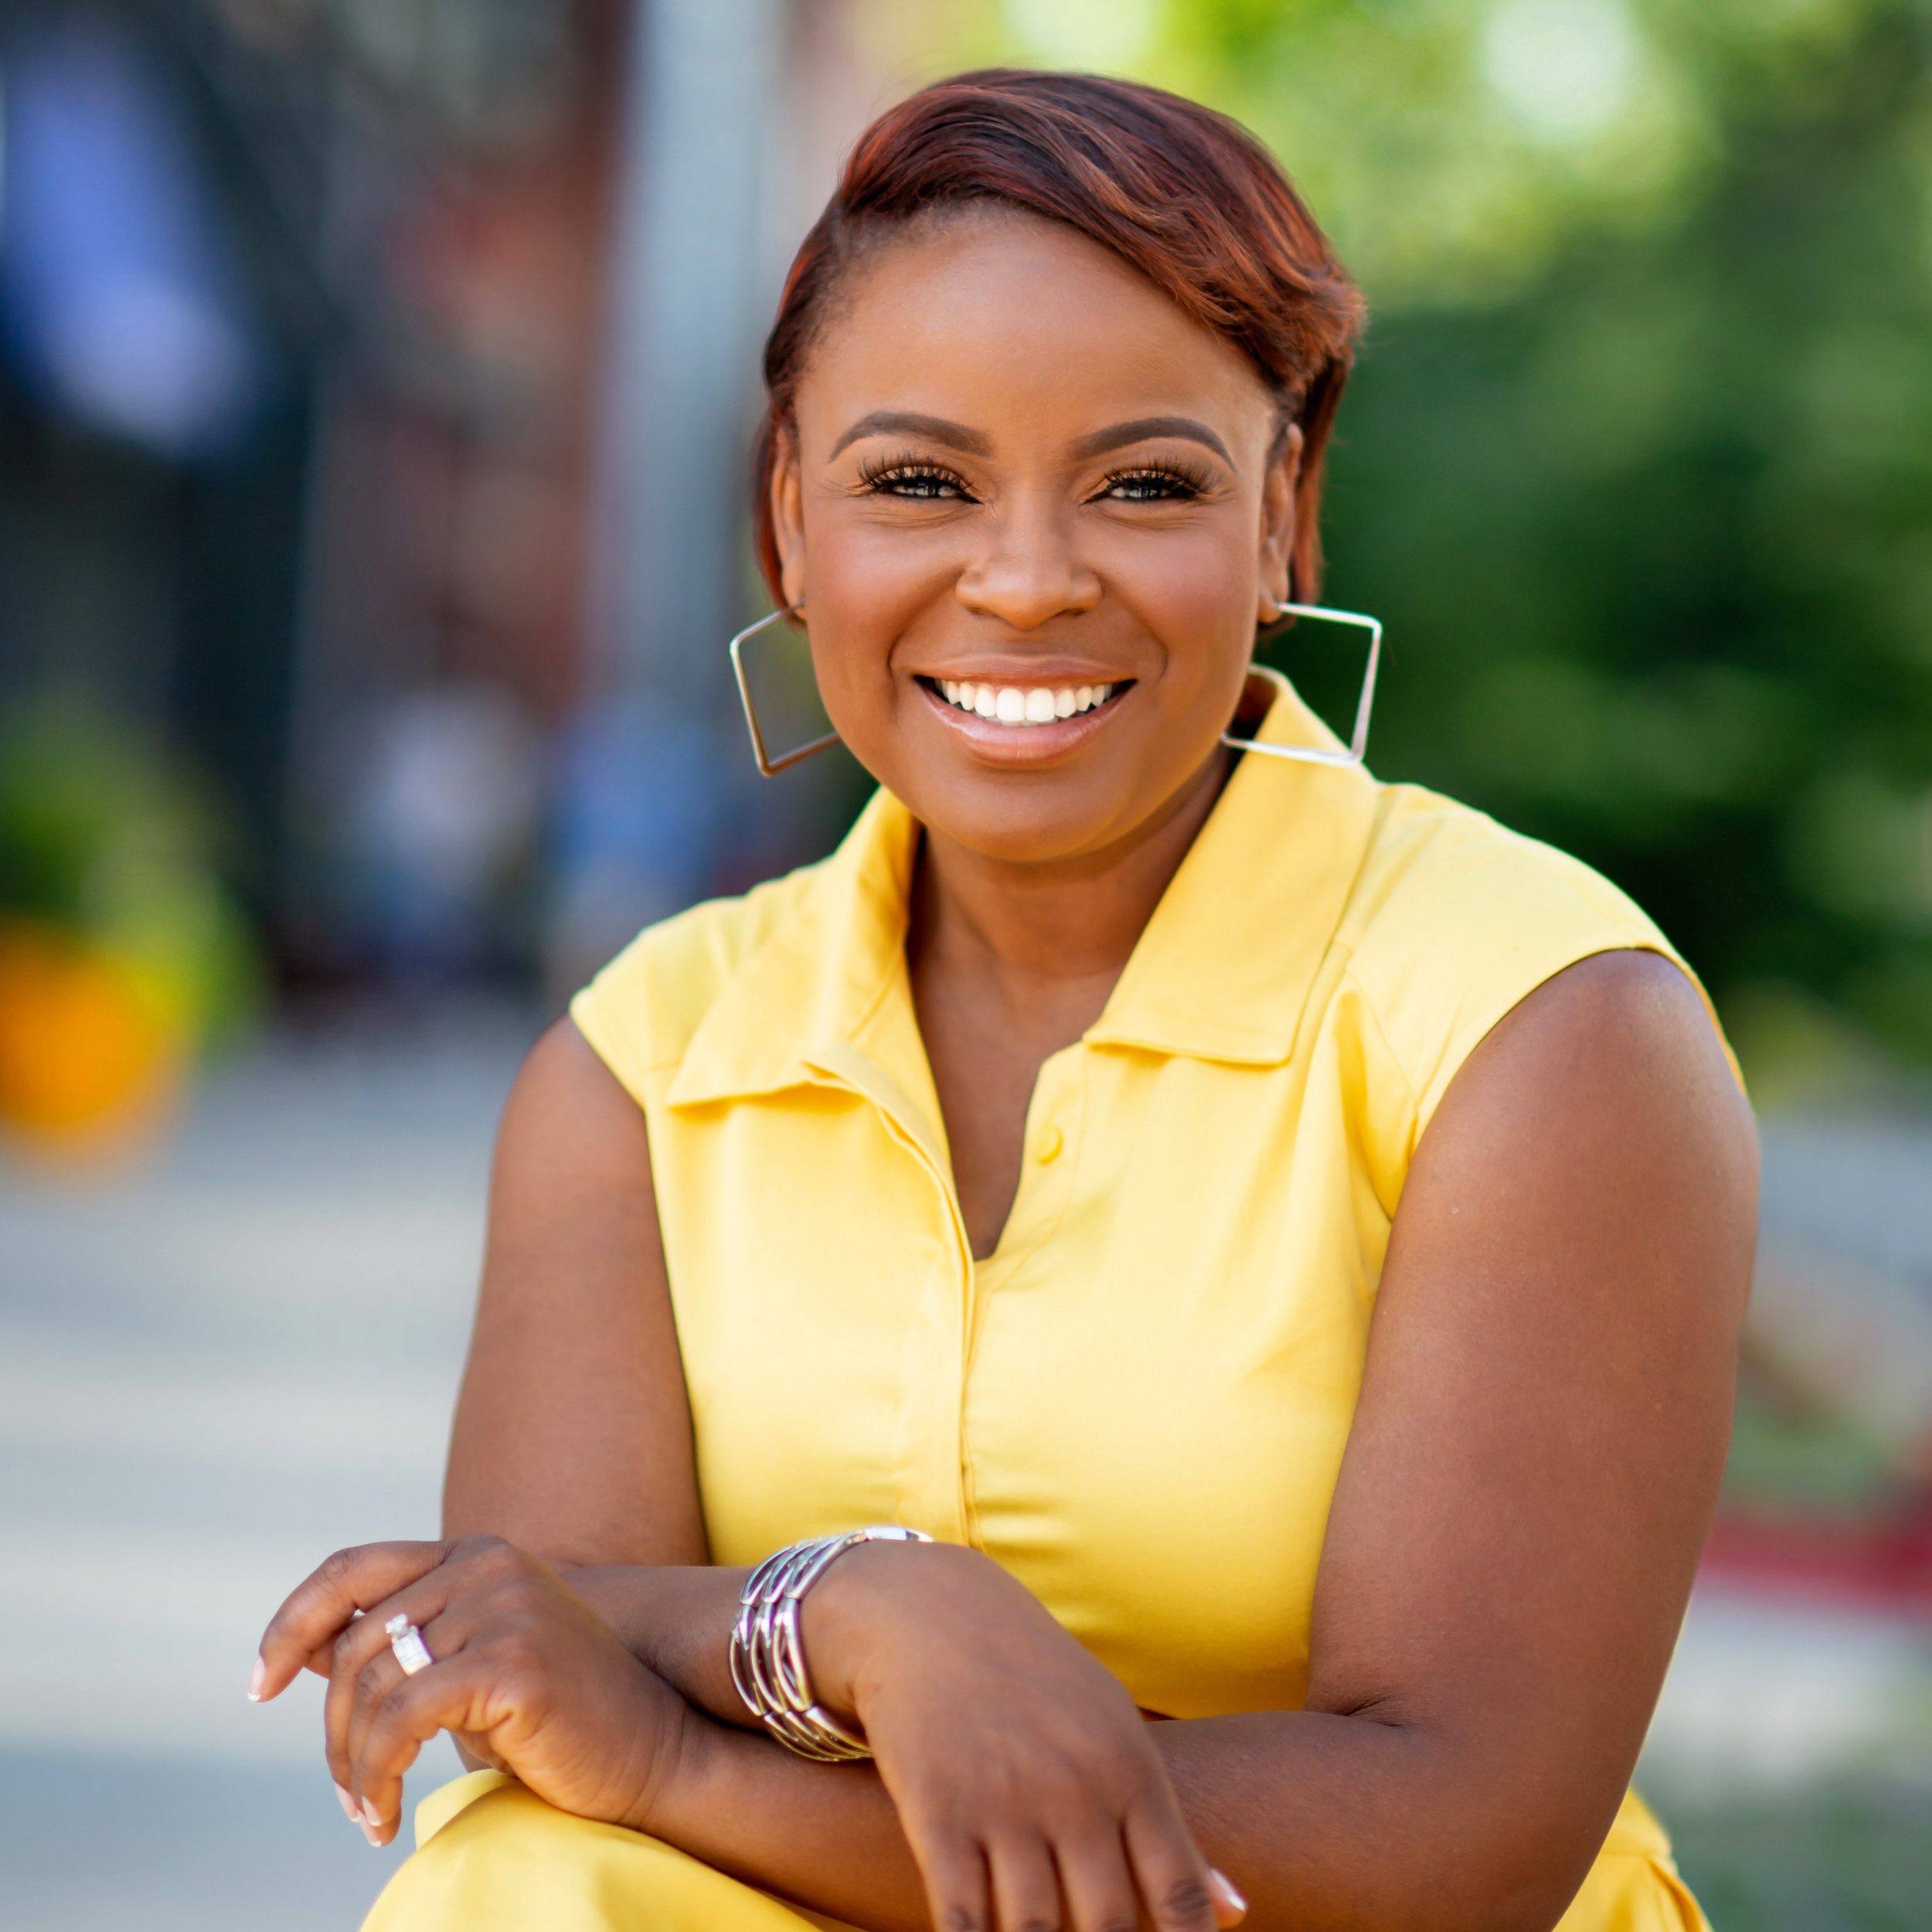 """""""Before working with Raven, I was battling feelings of overwhelm and indecision, causing my business growth to stagnate. With Raven's help, my stress began to evaporate and I gained the clarity I needed to execute the projects I'd been stalling on. Throughout the process, she was super professional, held me accountable, and served as a partner in both my personal and financial success. """"Amber L. WrightCommunication Expert & Coach Words Well Said -"""